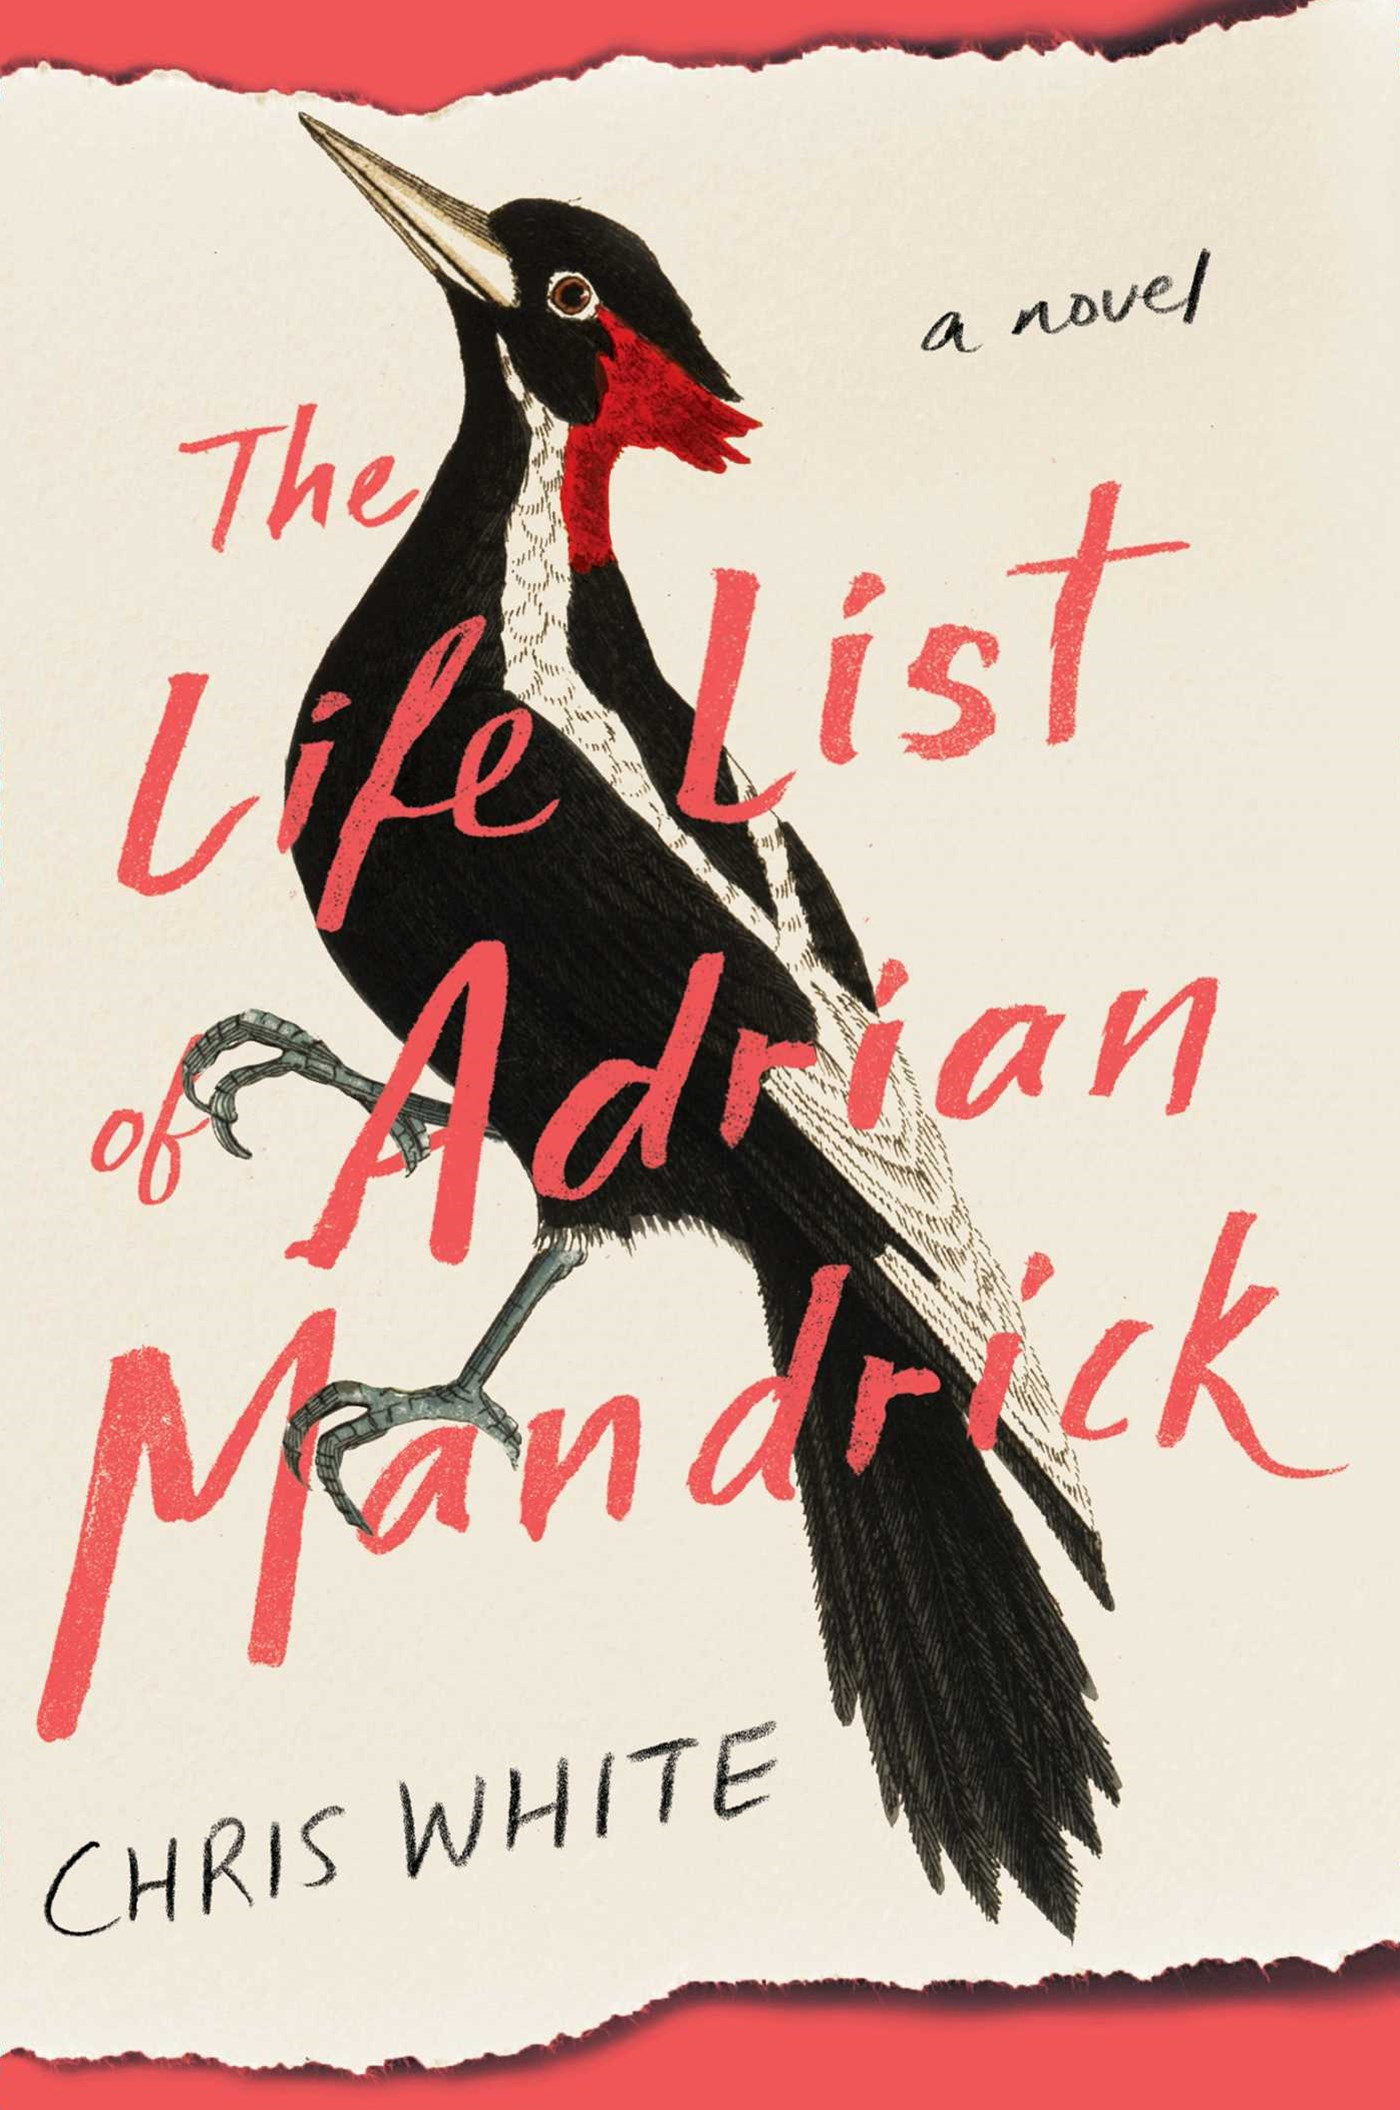 Life List Of Adrian Mandrick